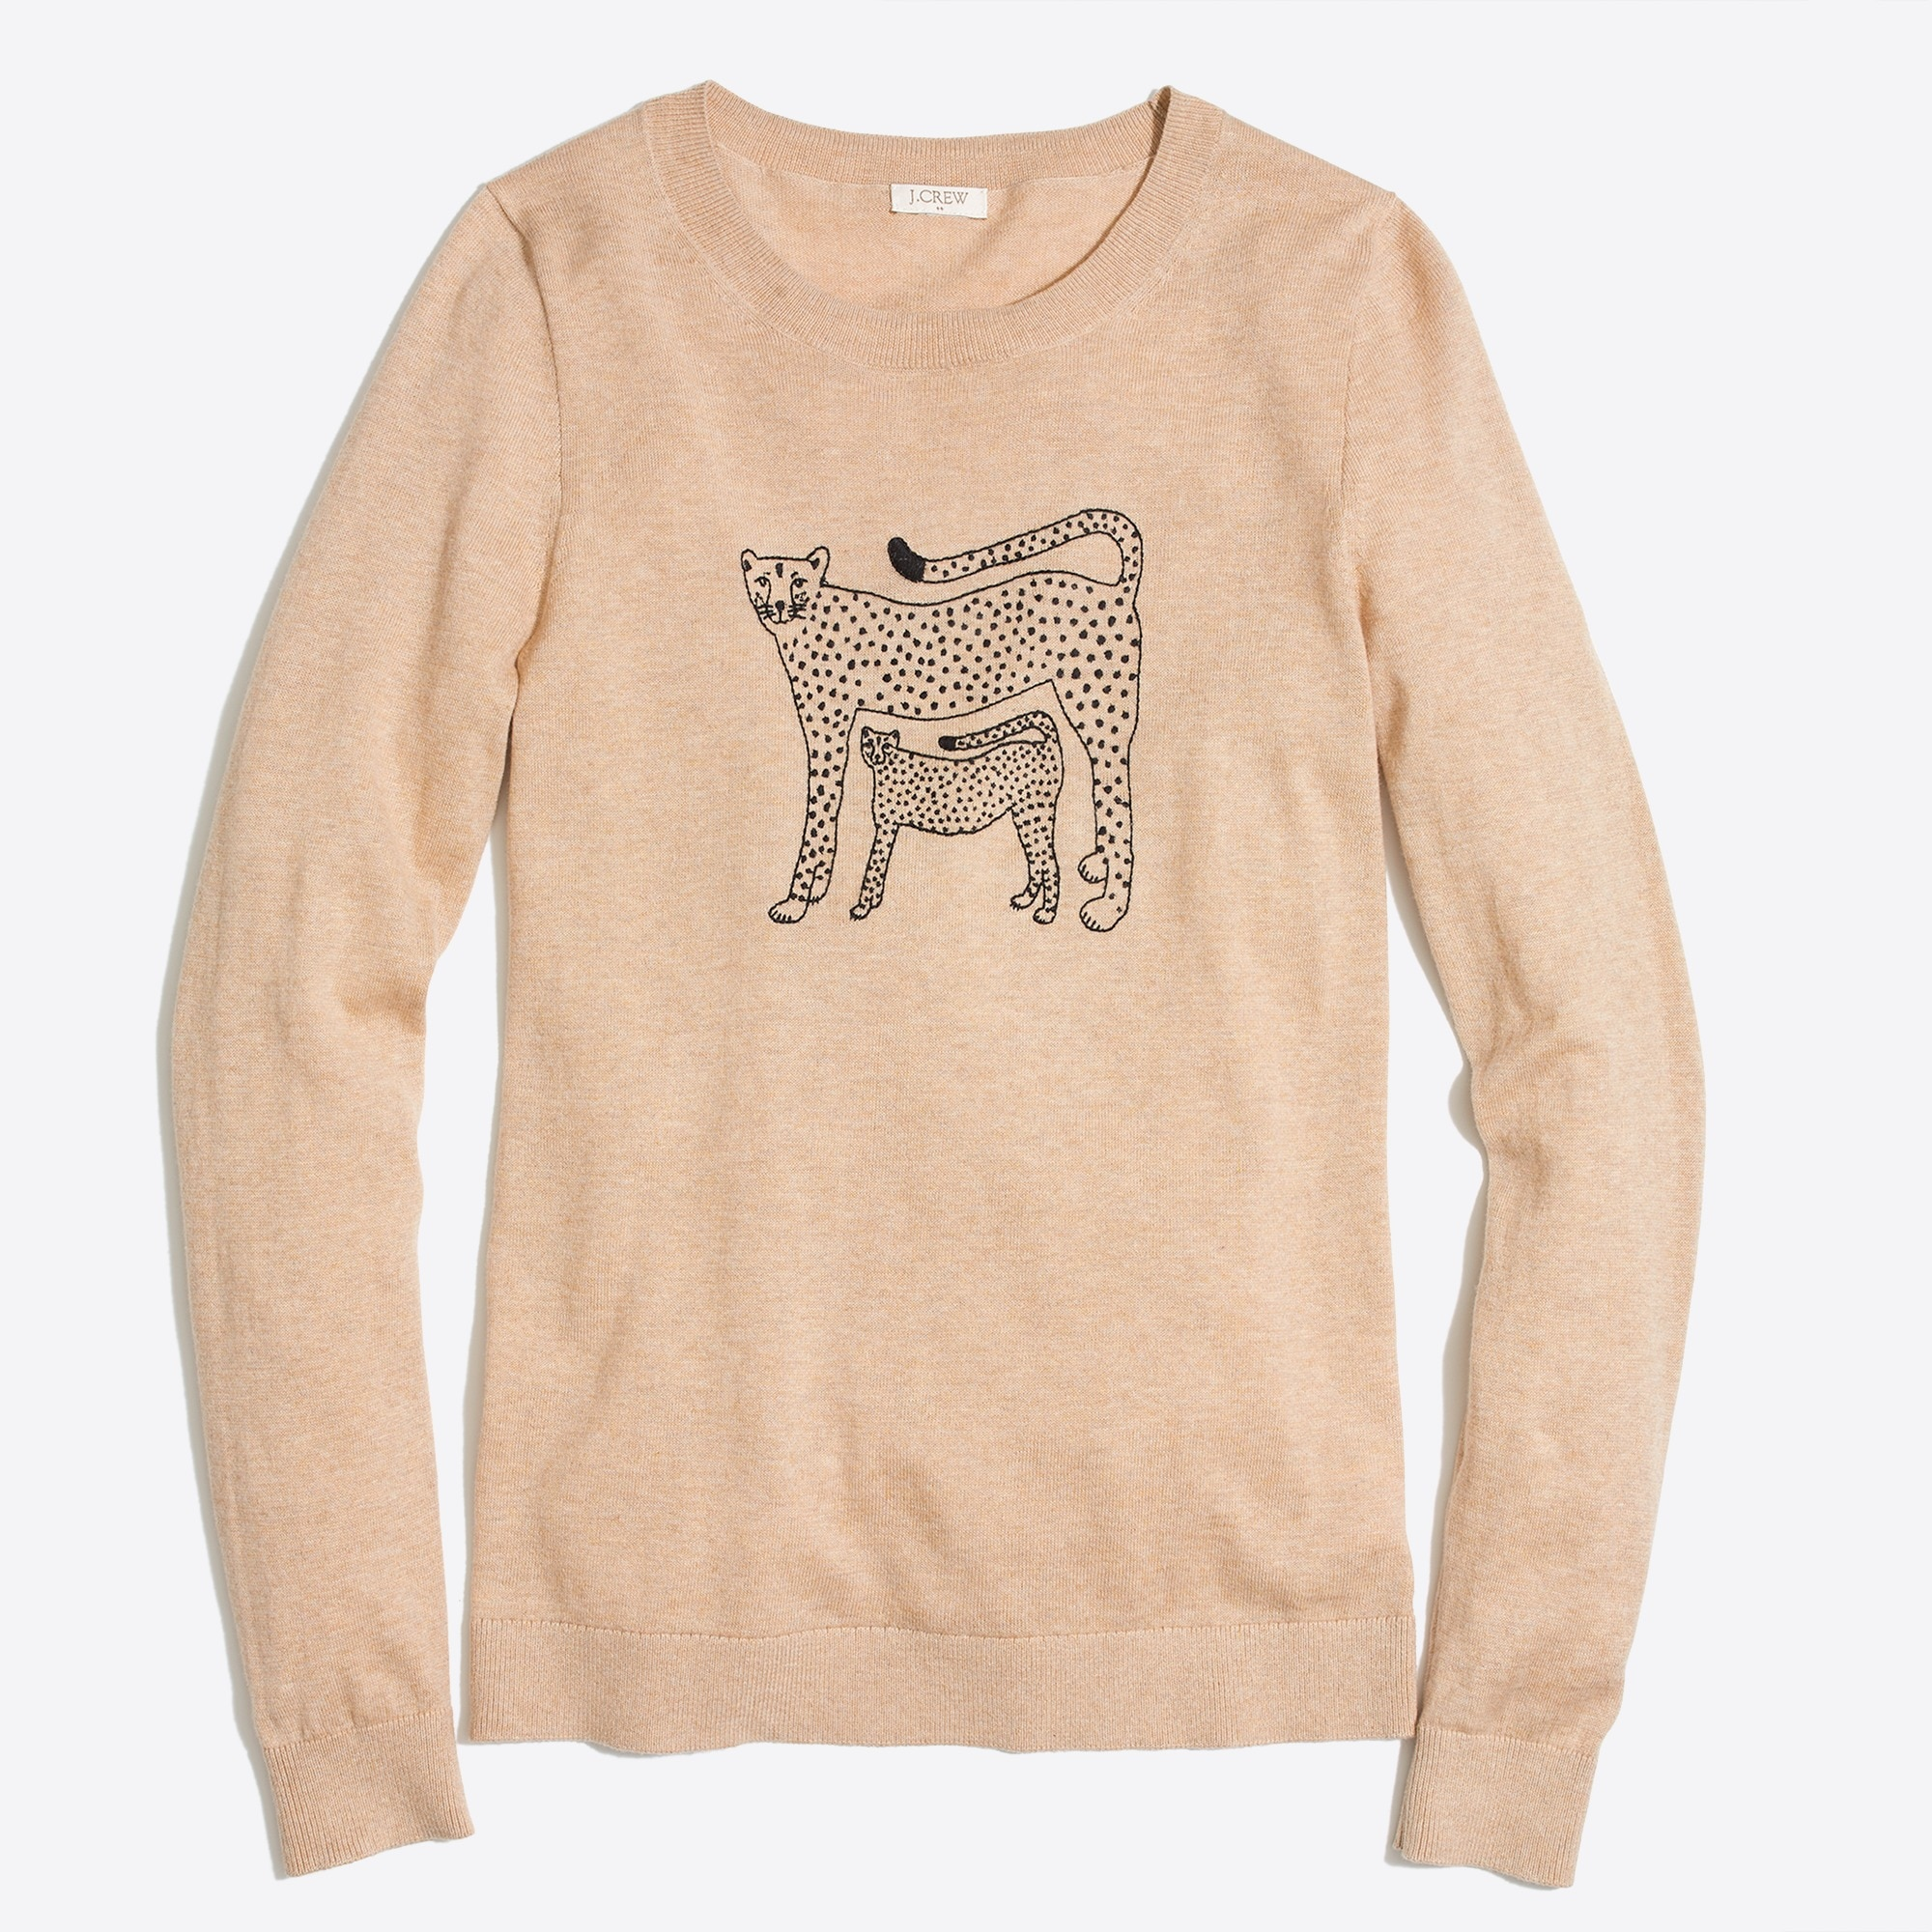 Image 2 for Embroidered cheetah Teddie sweater